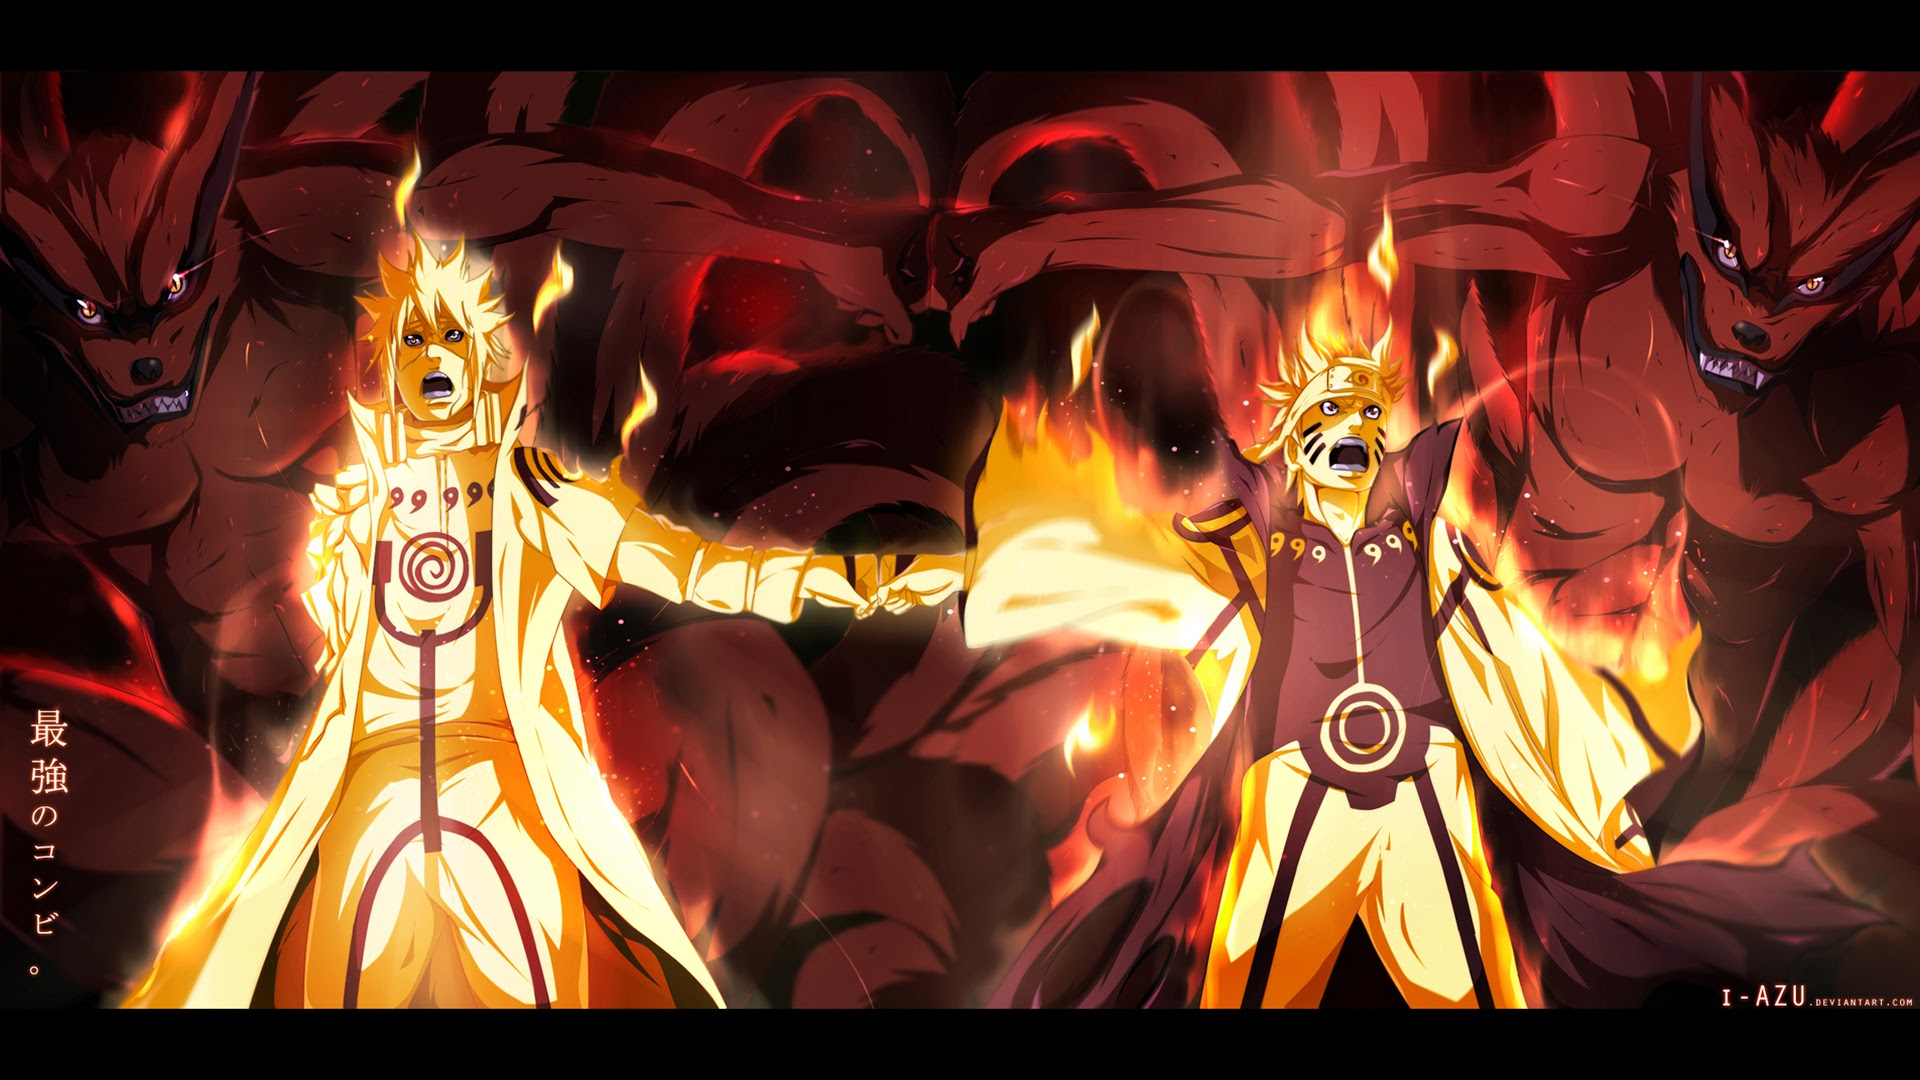 [46+] Naruto Wallpapers for Desktop 1920x1080 on ...